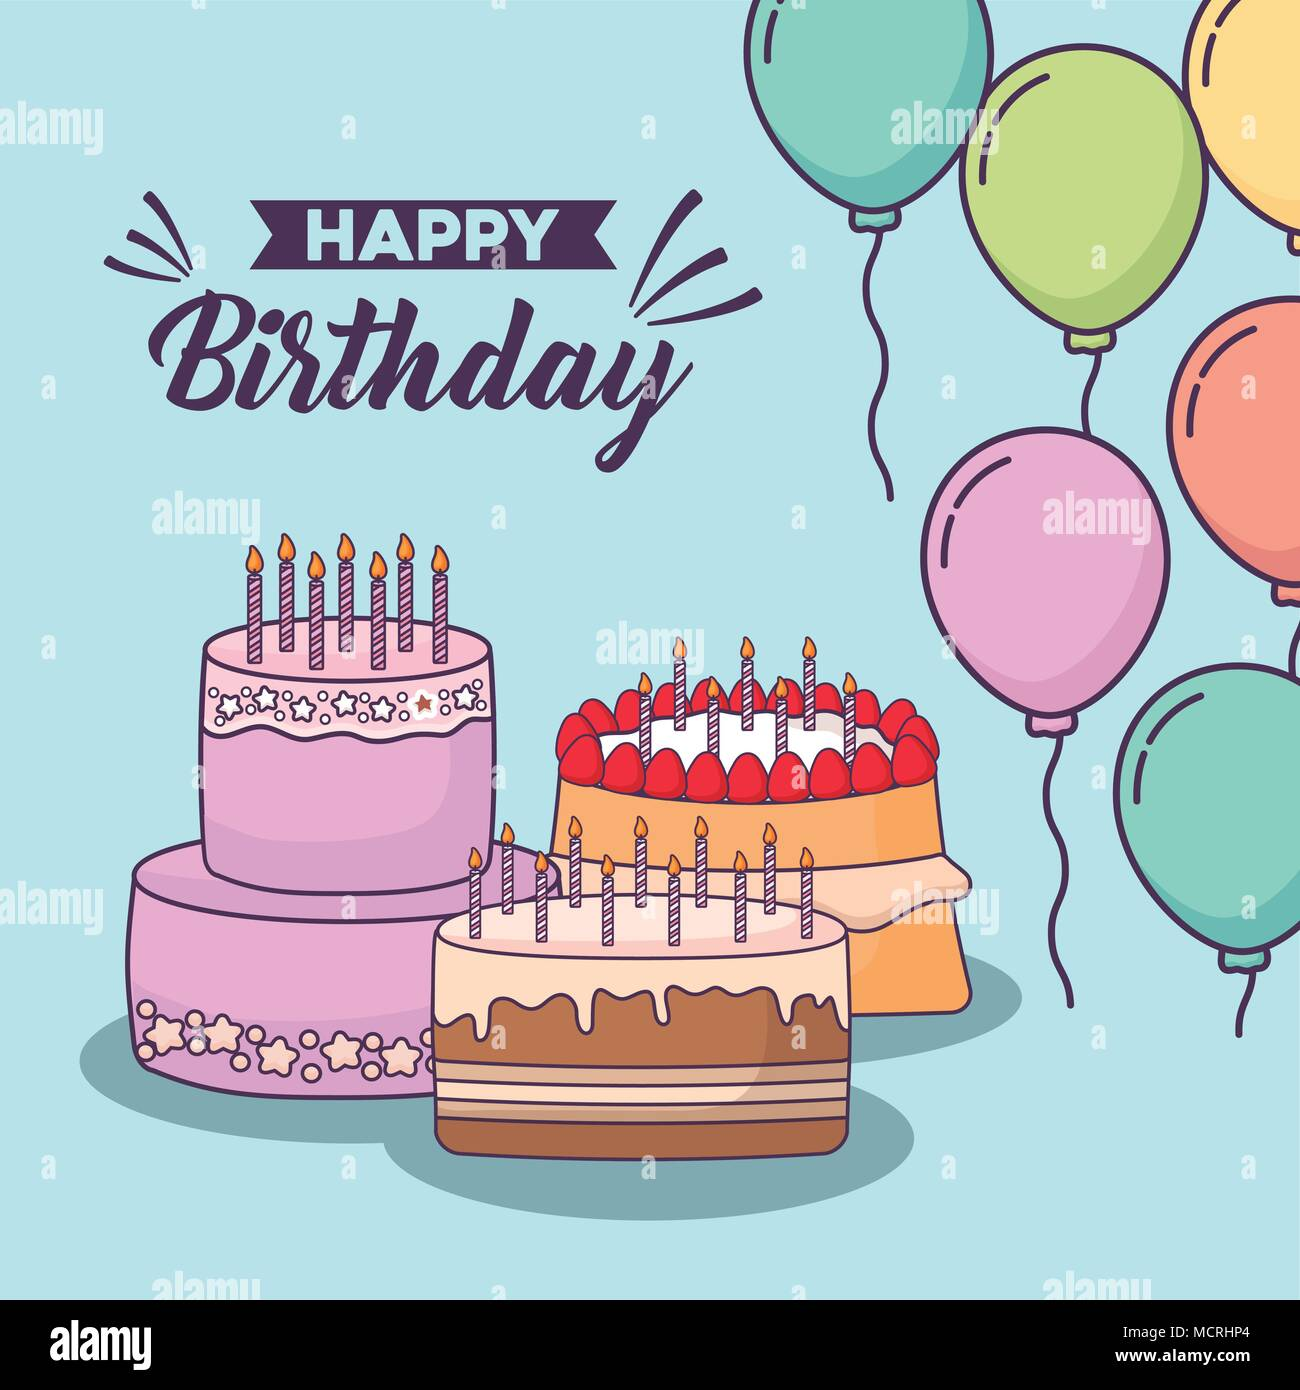 Happy Birthday Design With Birthday Cakes And Decorative Colorful